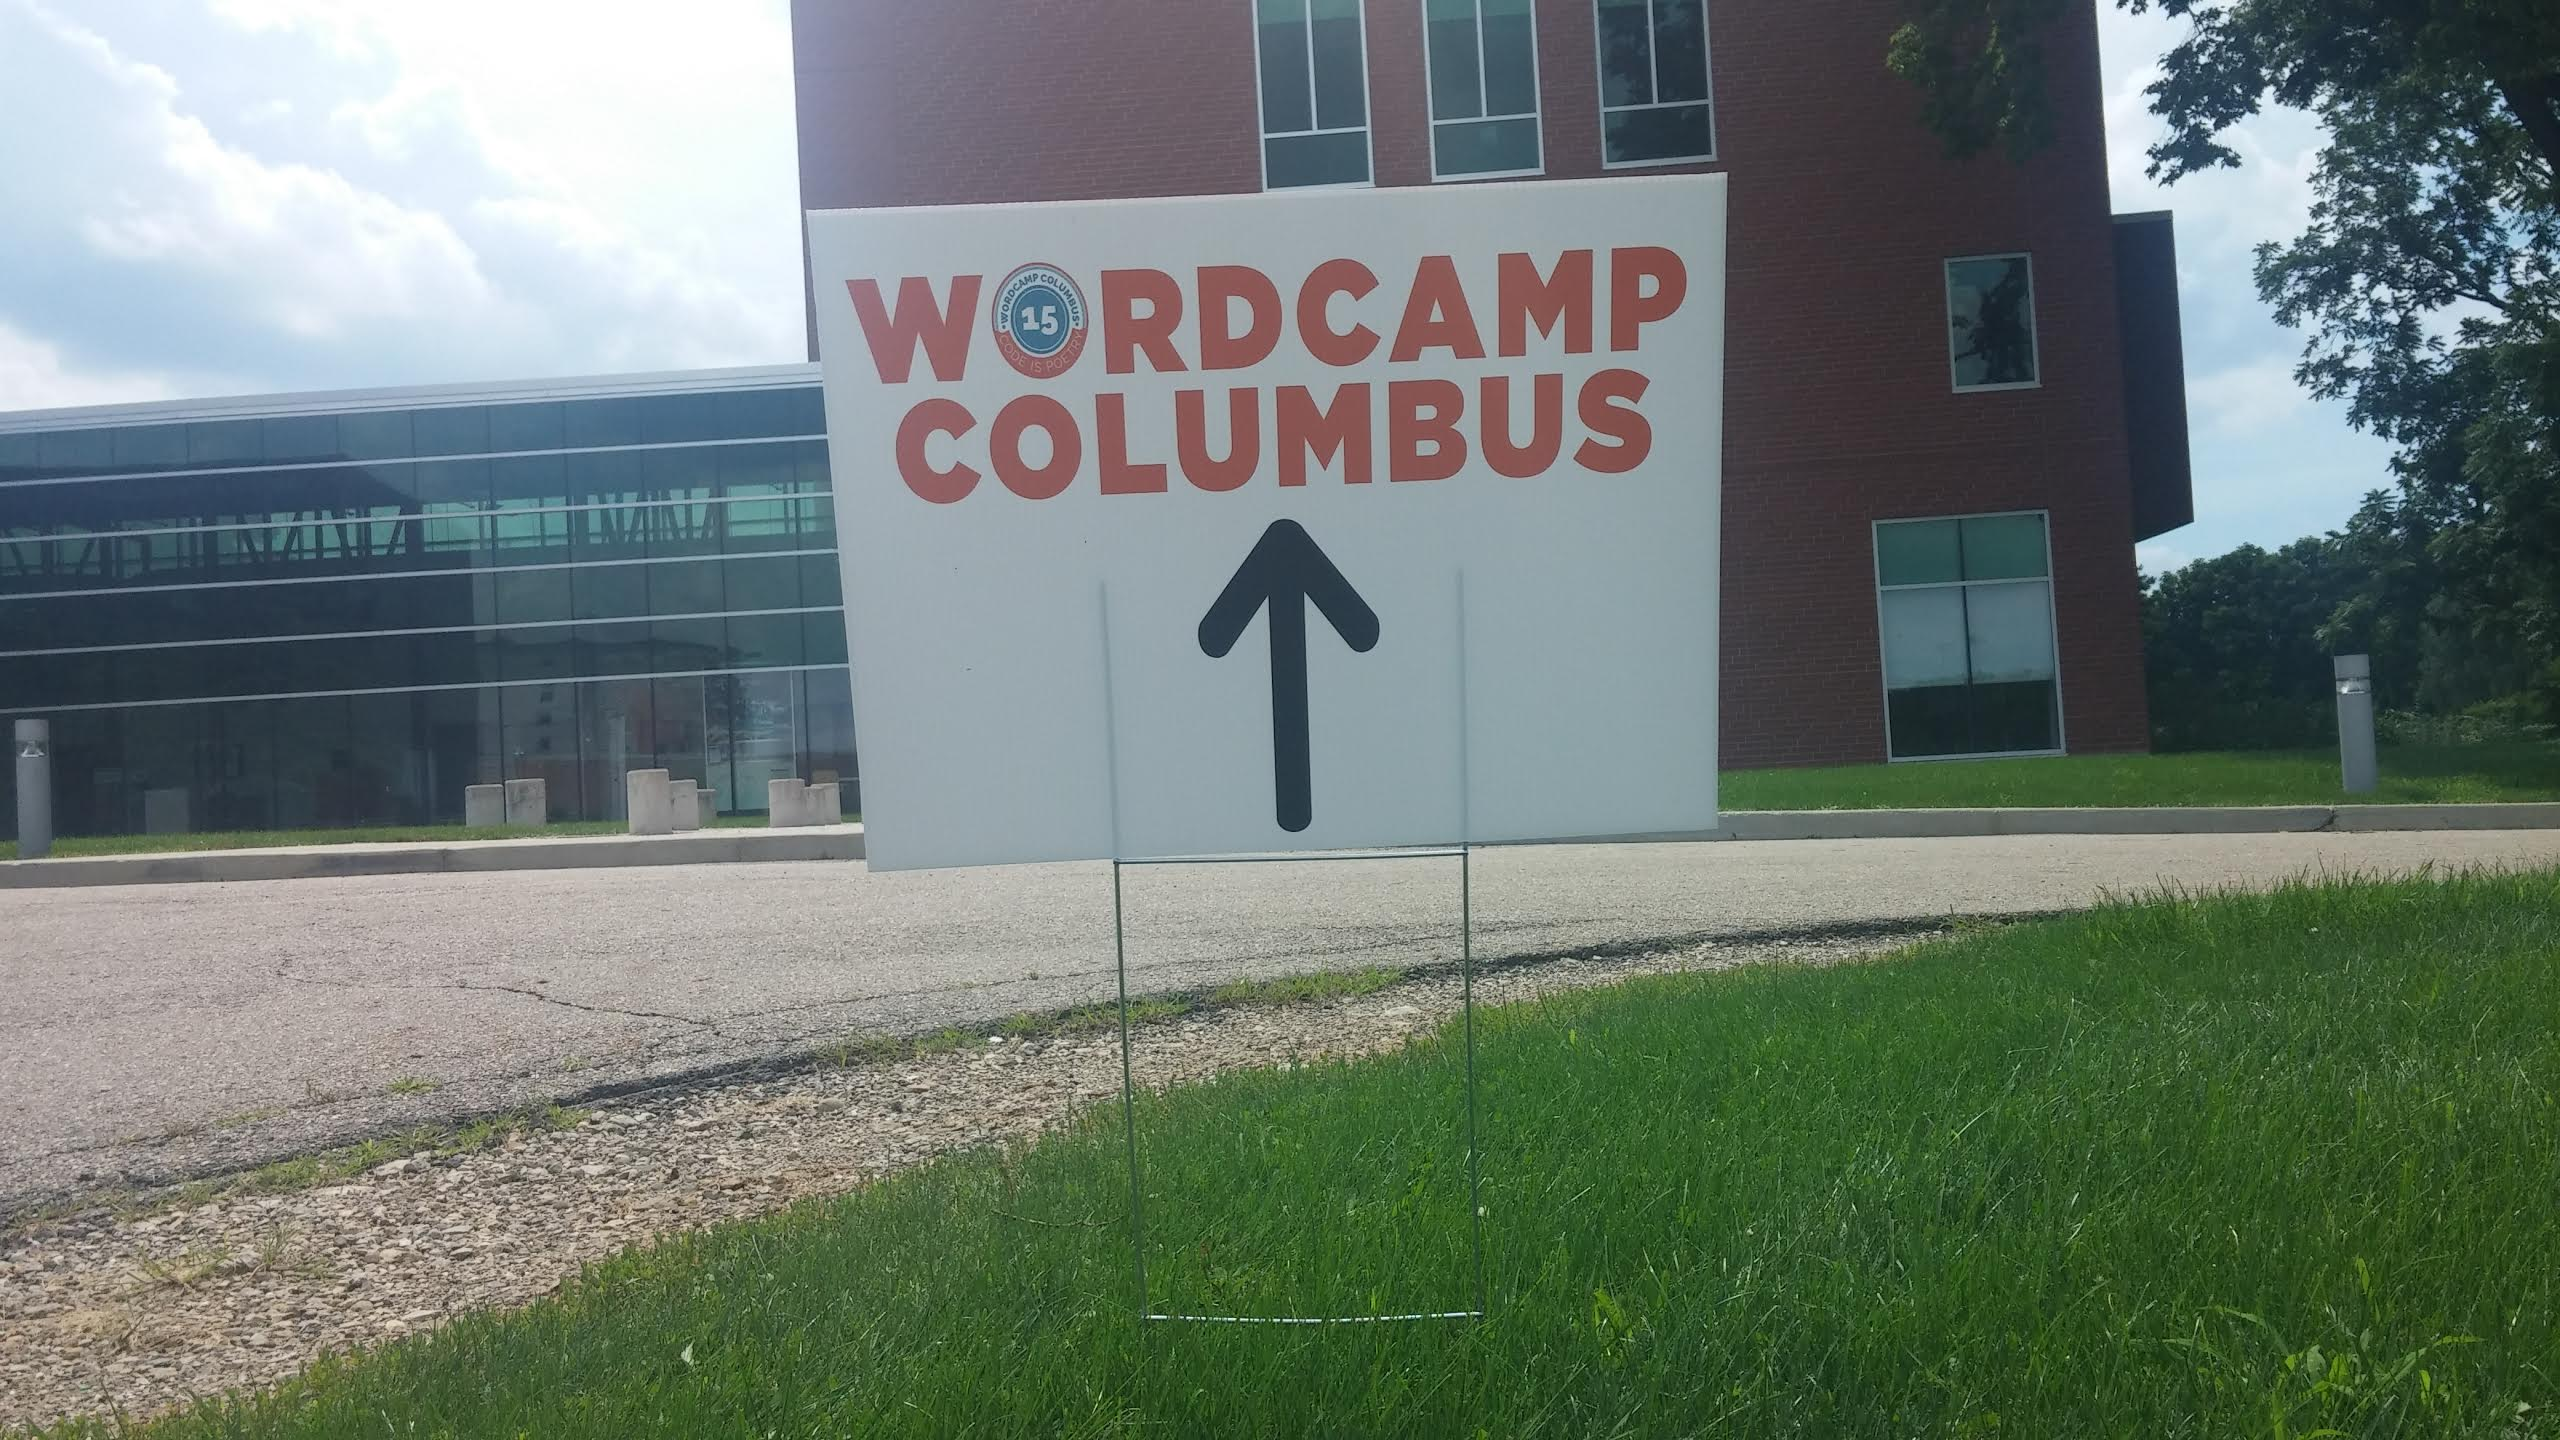 A directional sign pointing to the building where WordCamp Columbus 2015 takes place